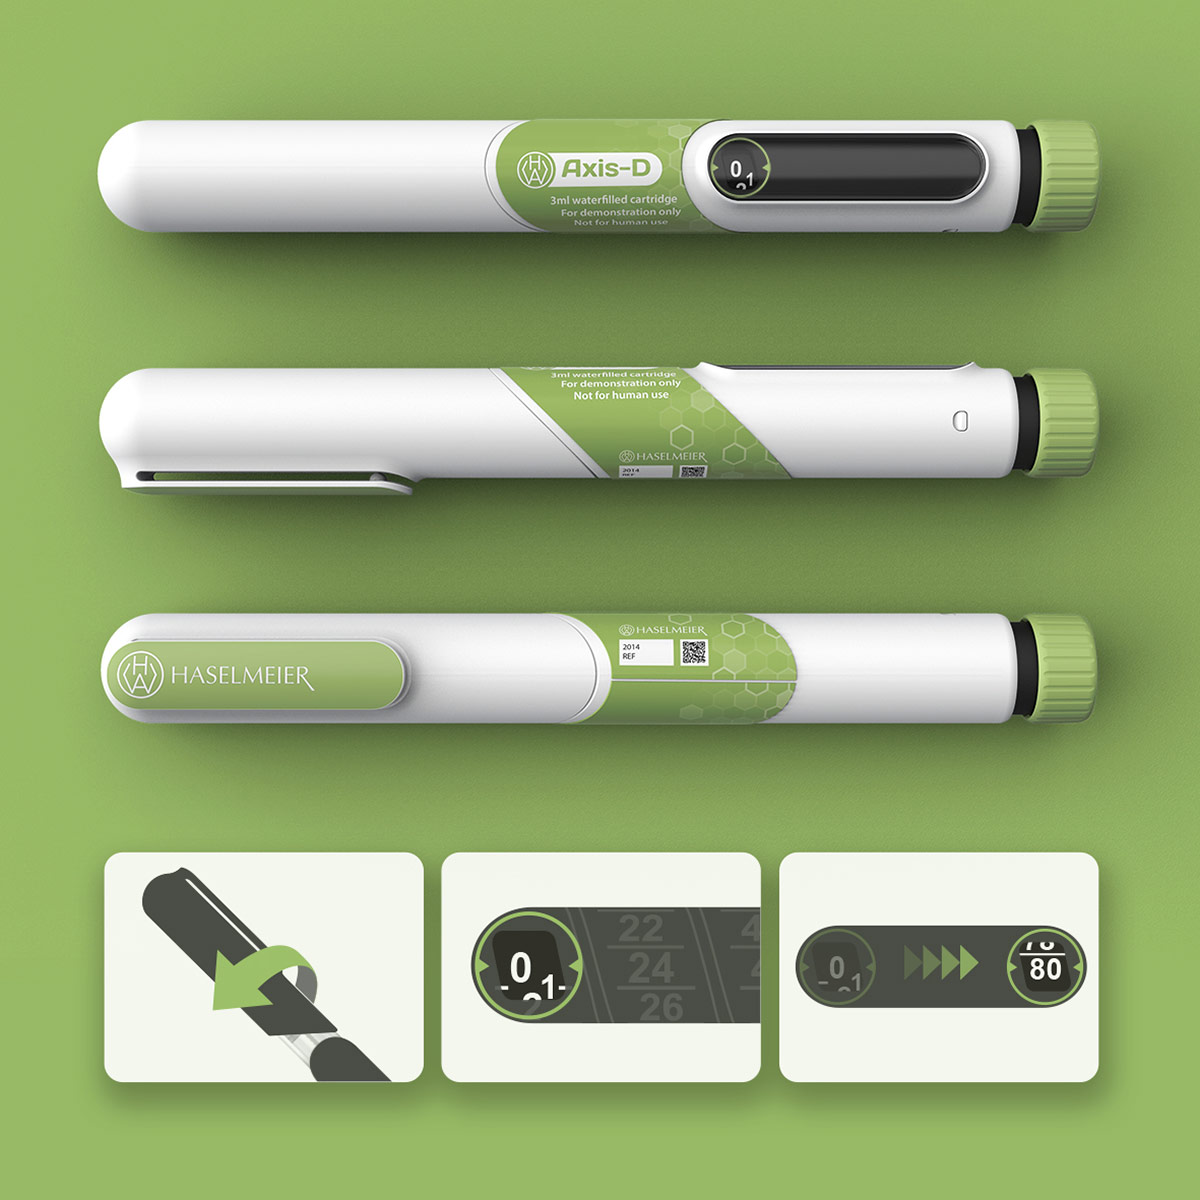 Product view of a variable dose injector pen